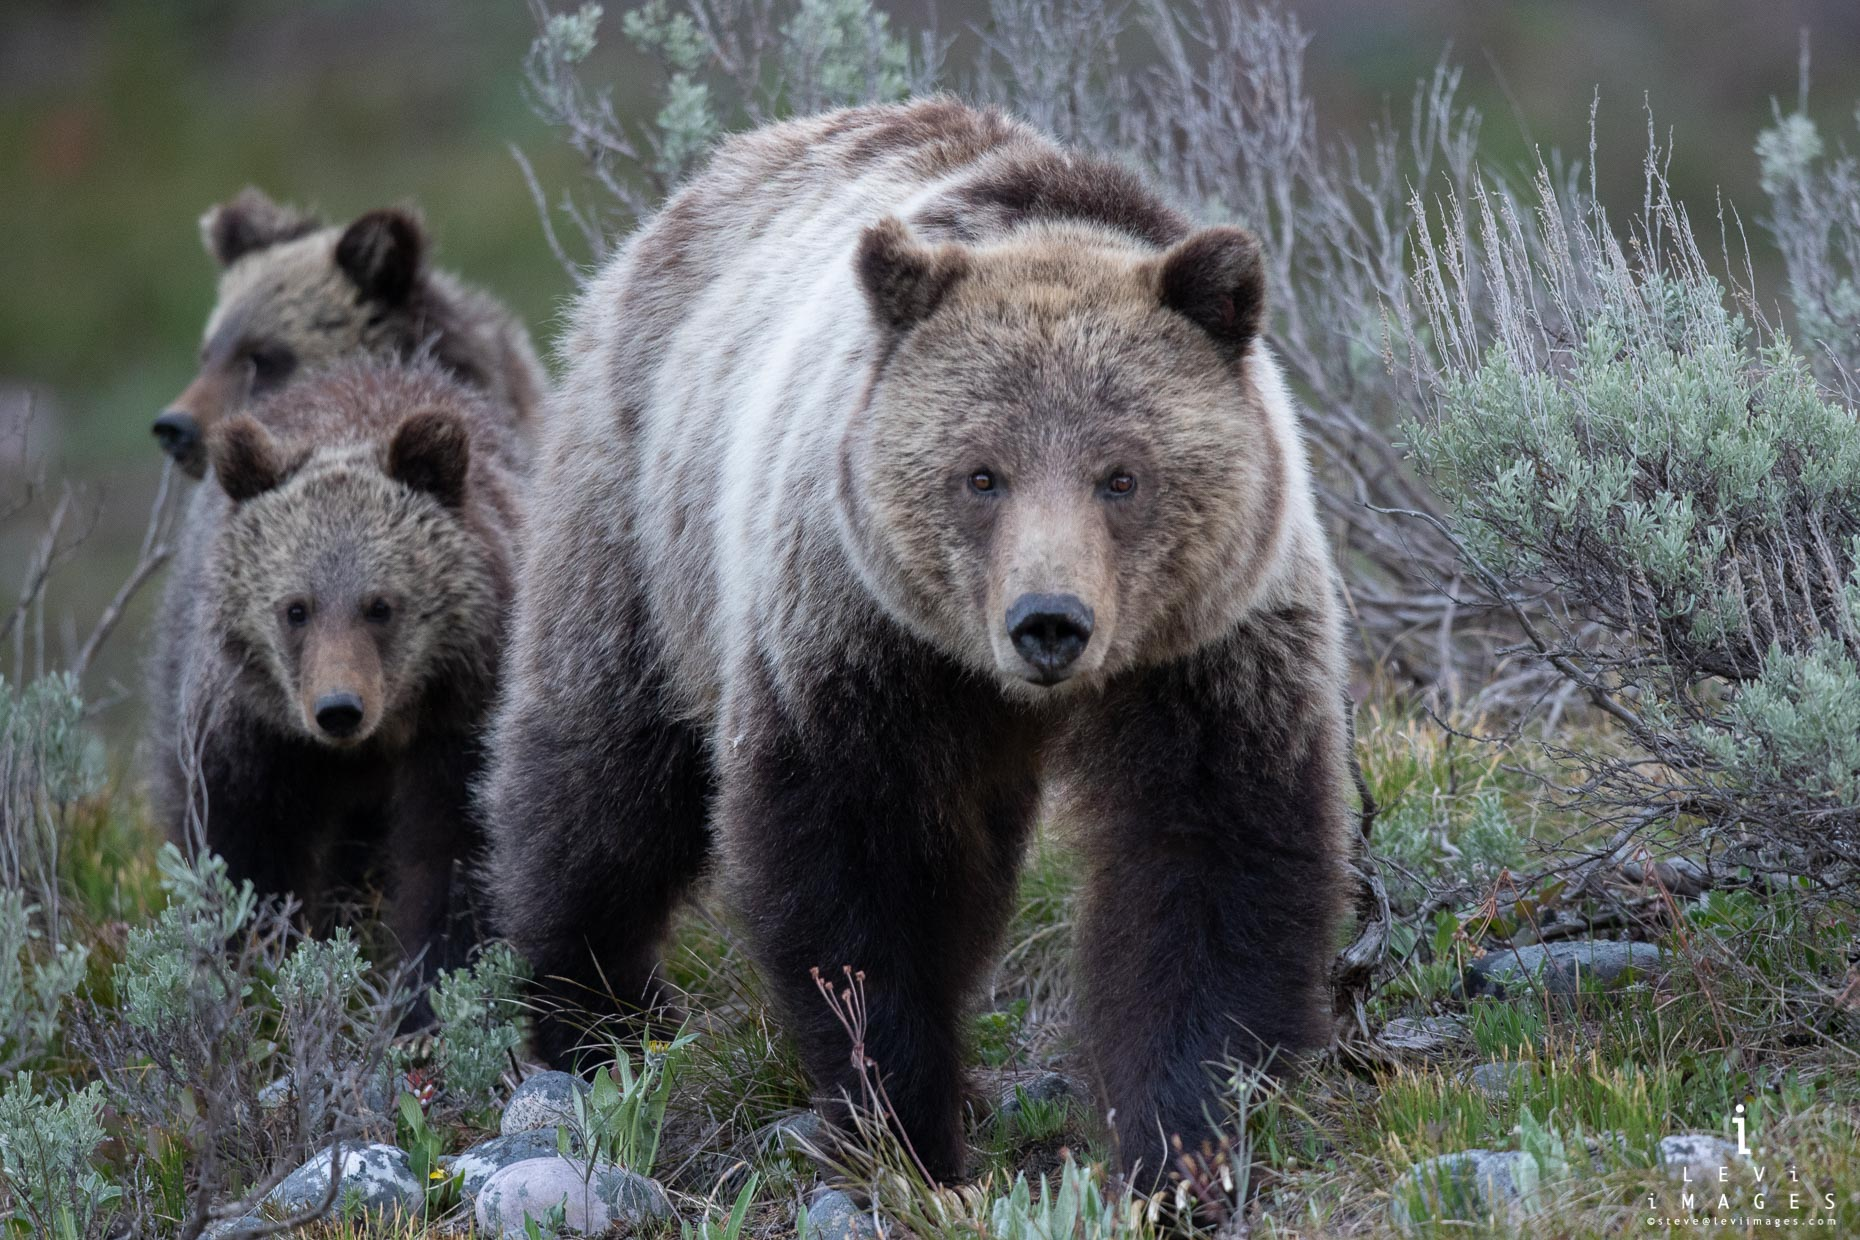 Grizzly bear (Ursus arctos) and cubs walk out of brush. Grand Teton National Park, Wyoming